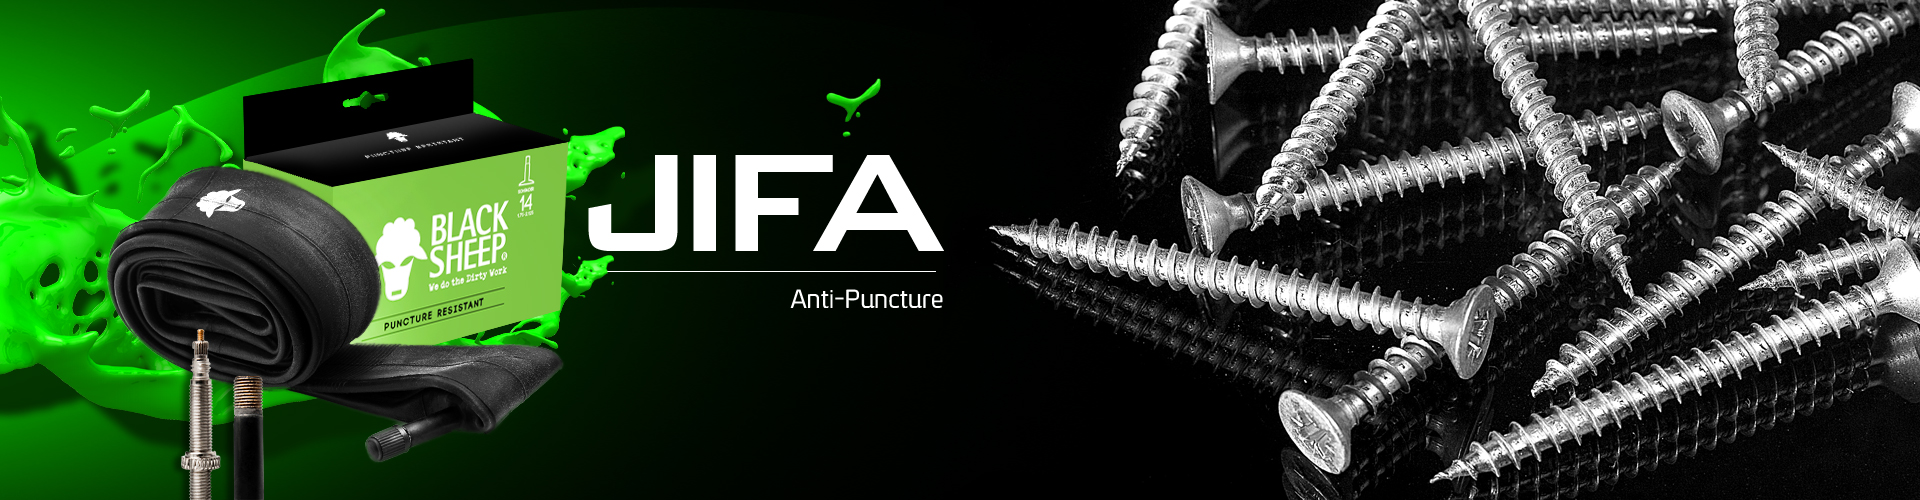 Jifa Tube | Anti-Puncture bicycle inner tube High Quality Ready to use Anti-Puncture bicycle inner tube C/W Instant puncture sealant fluid Effective puncture sealing up to 3 mm diameter Sizes 26/ 27.5/29 X 1.95-2.10 Presta or Schrader